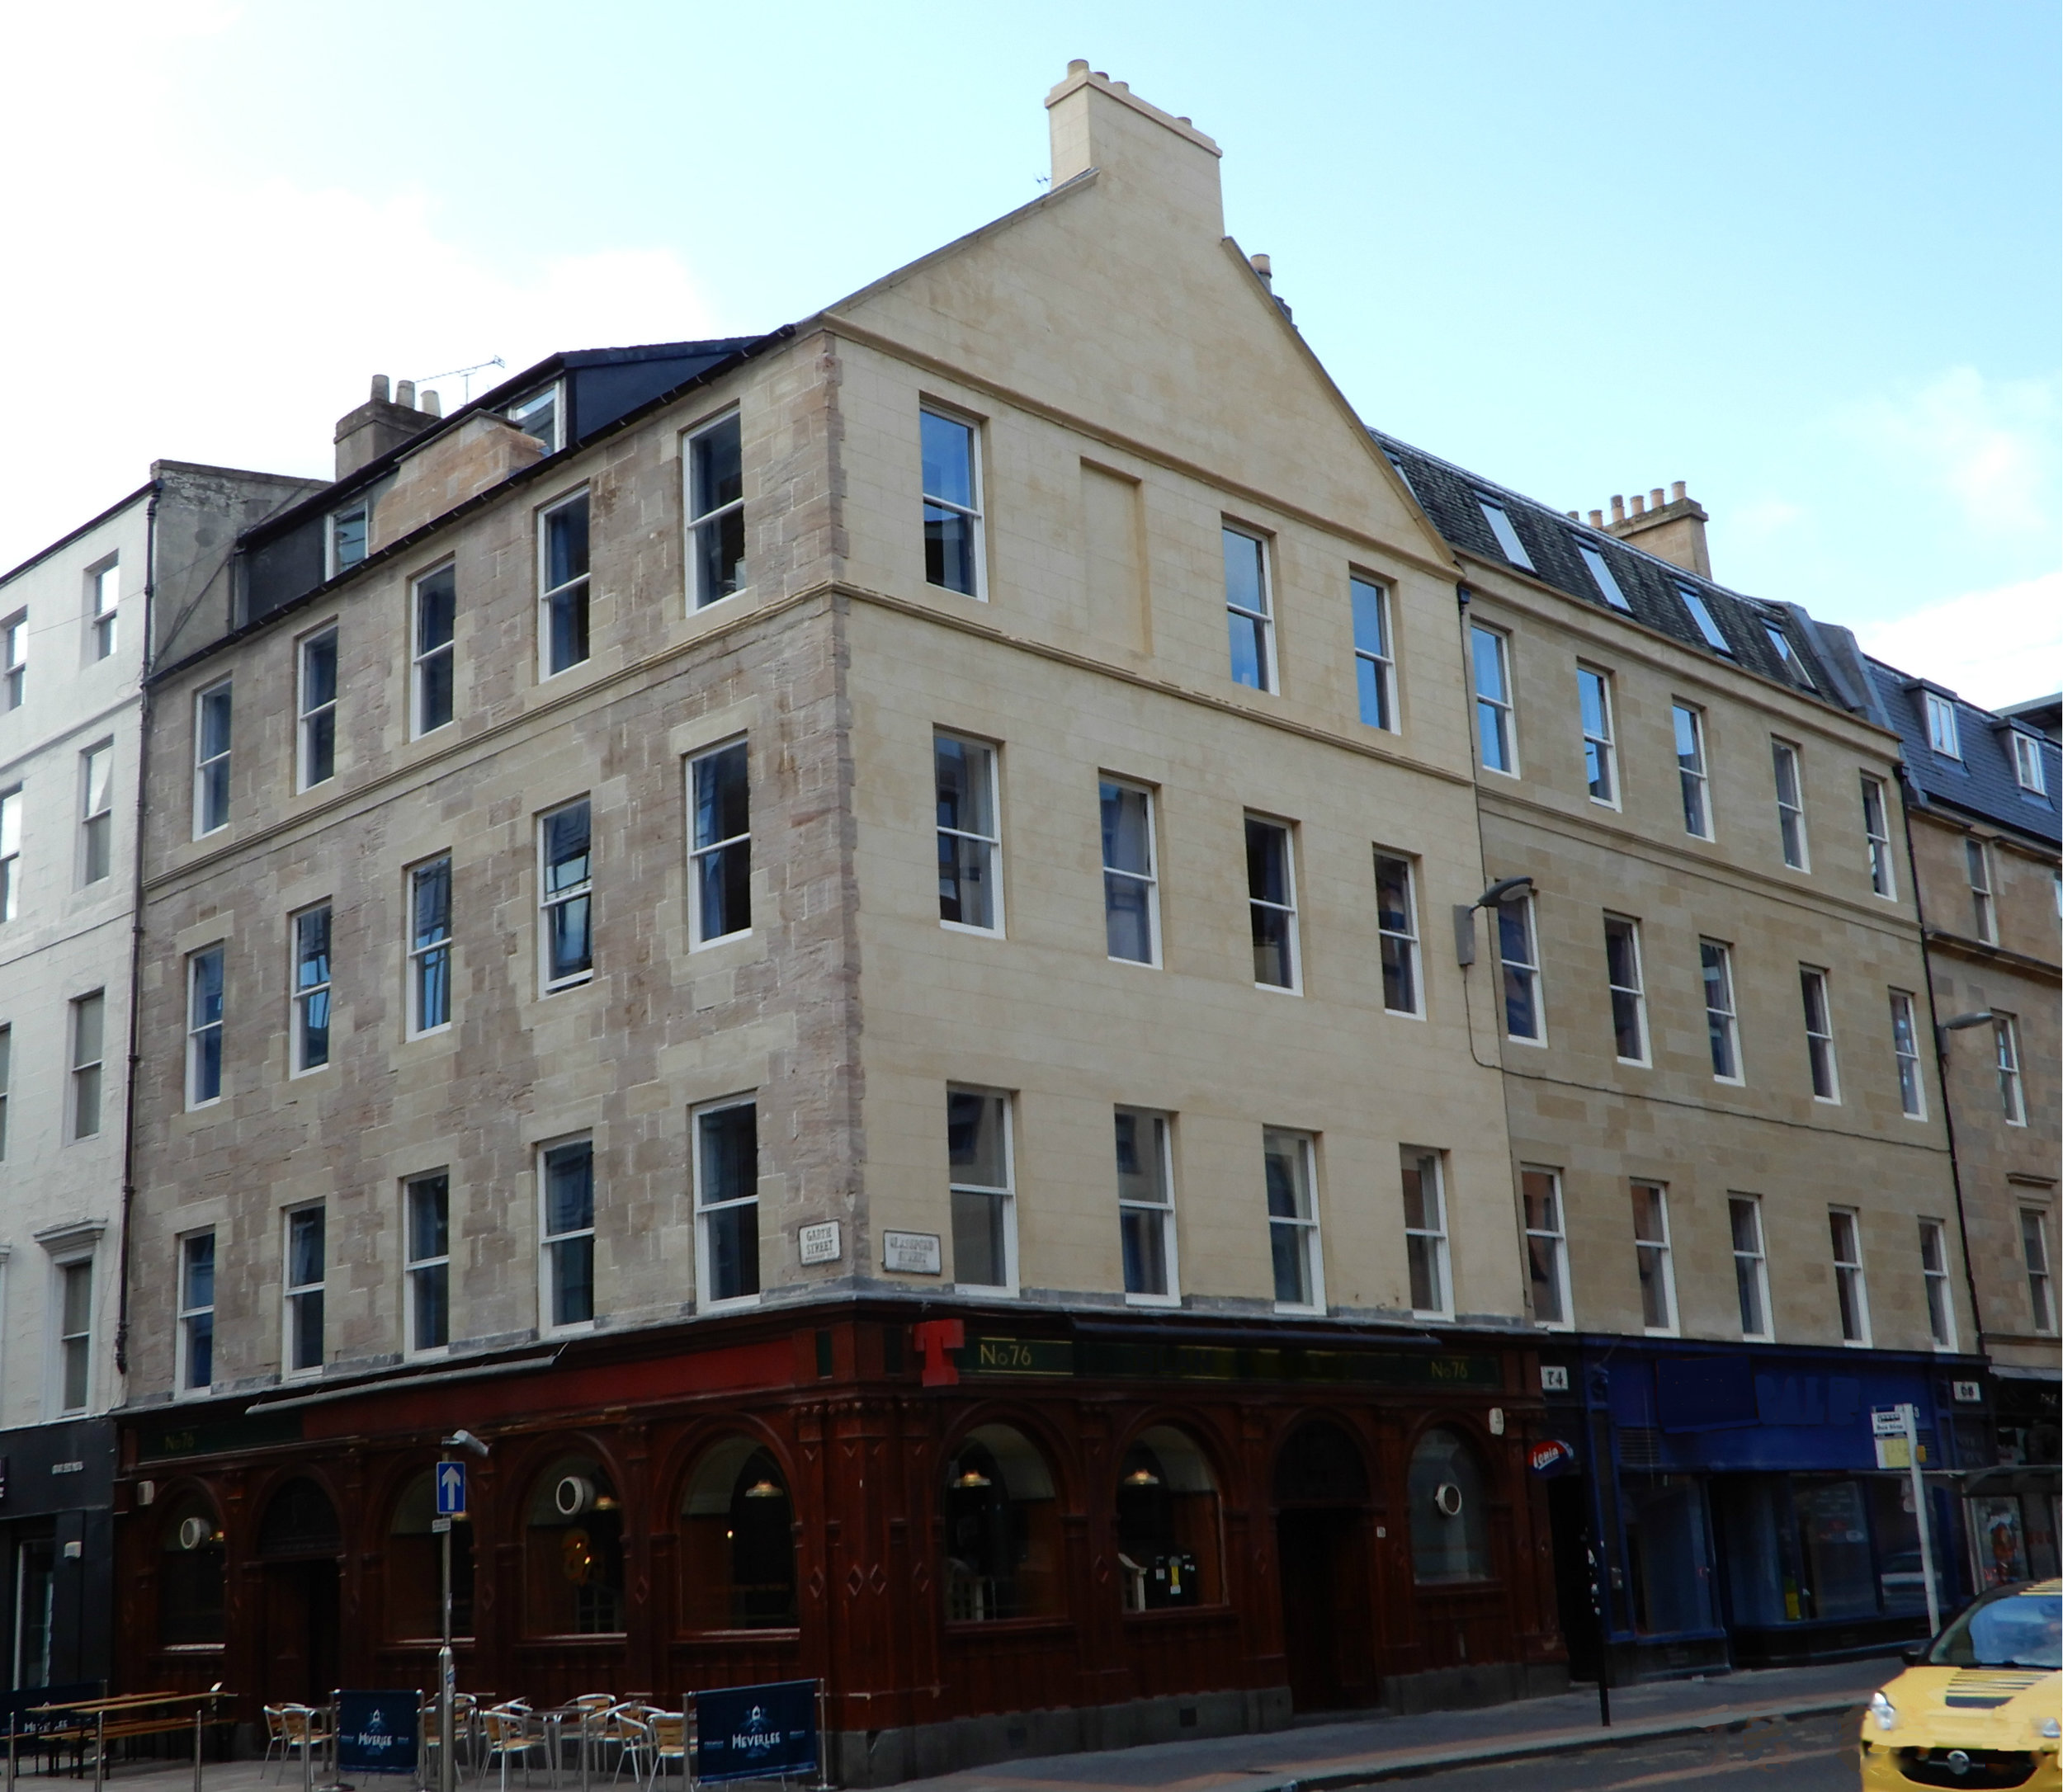 Norbulk House, Glasgow